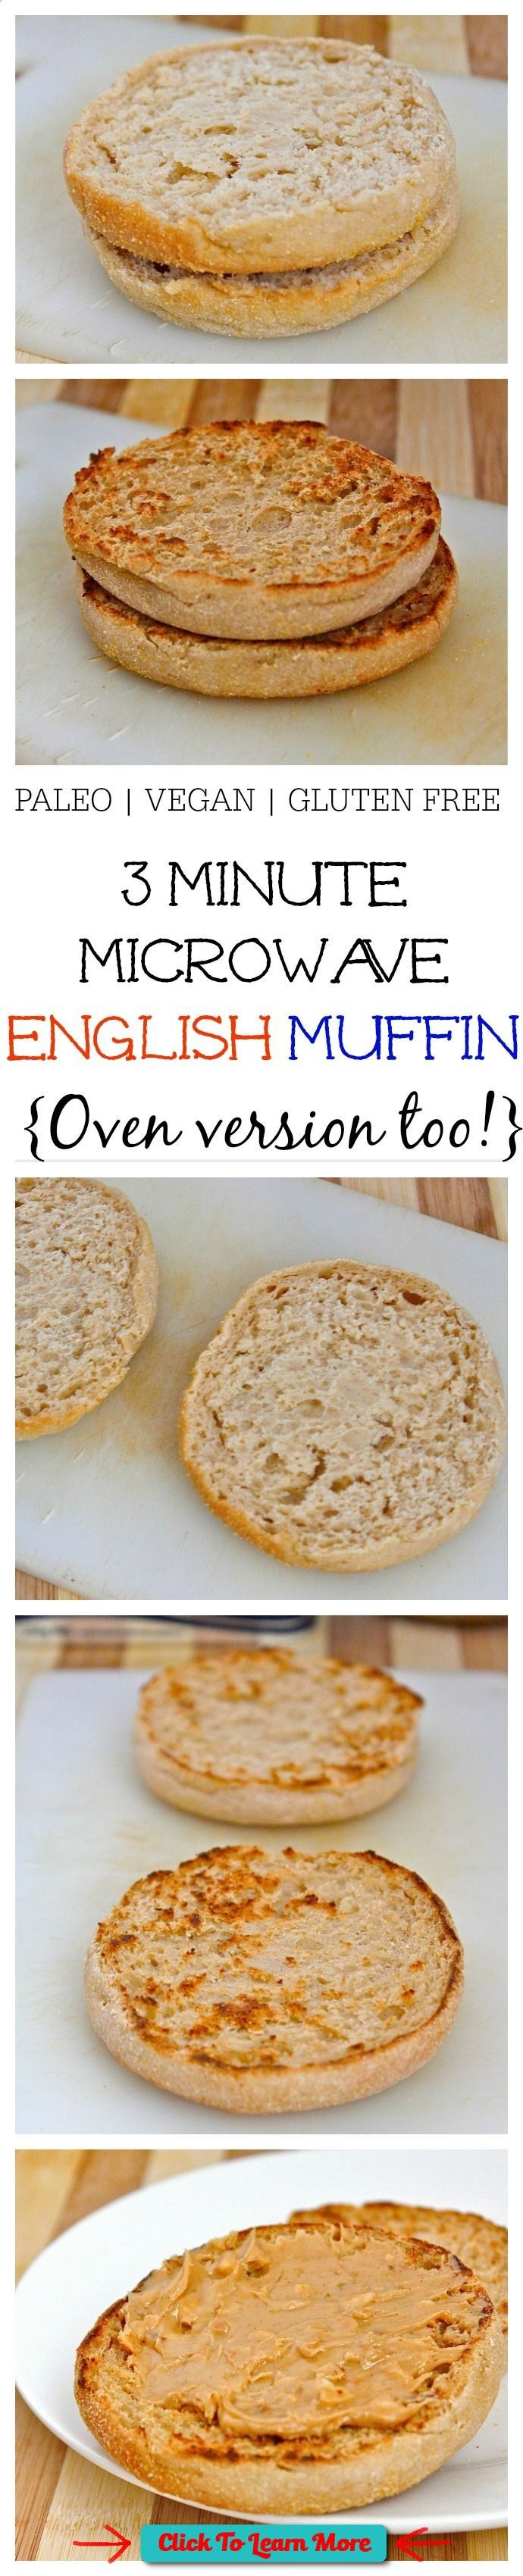 #FastestWayToLoseWeight by EATING, Click to learn more, 3 Minute Microwave English Muffin (Paleo, Vegan AND gluten free!)- So easy, Ive completely stopped buying bread- Theres an oven version too so I can bulk cook! , #HealthyRecipes, #FitnessRecipes, #BurnFatRecipes, #WeightLossRecipes, #WeightLossDiets